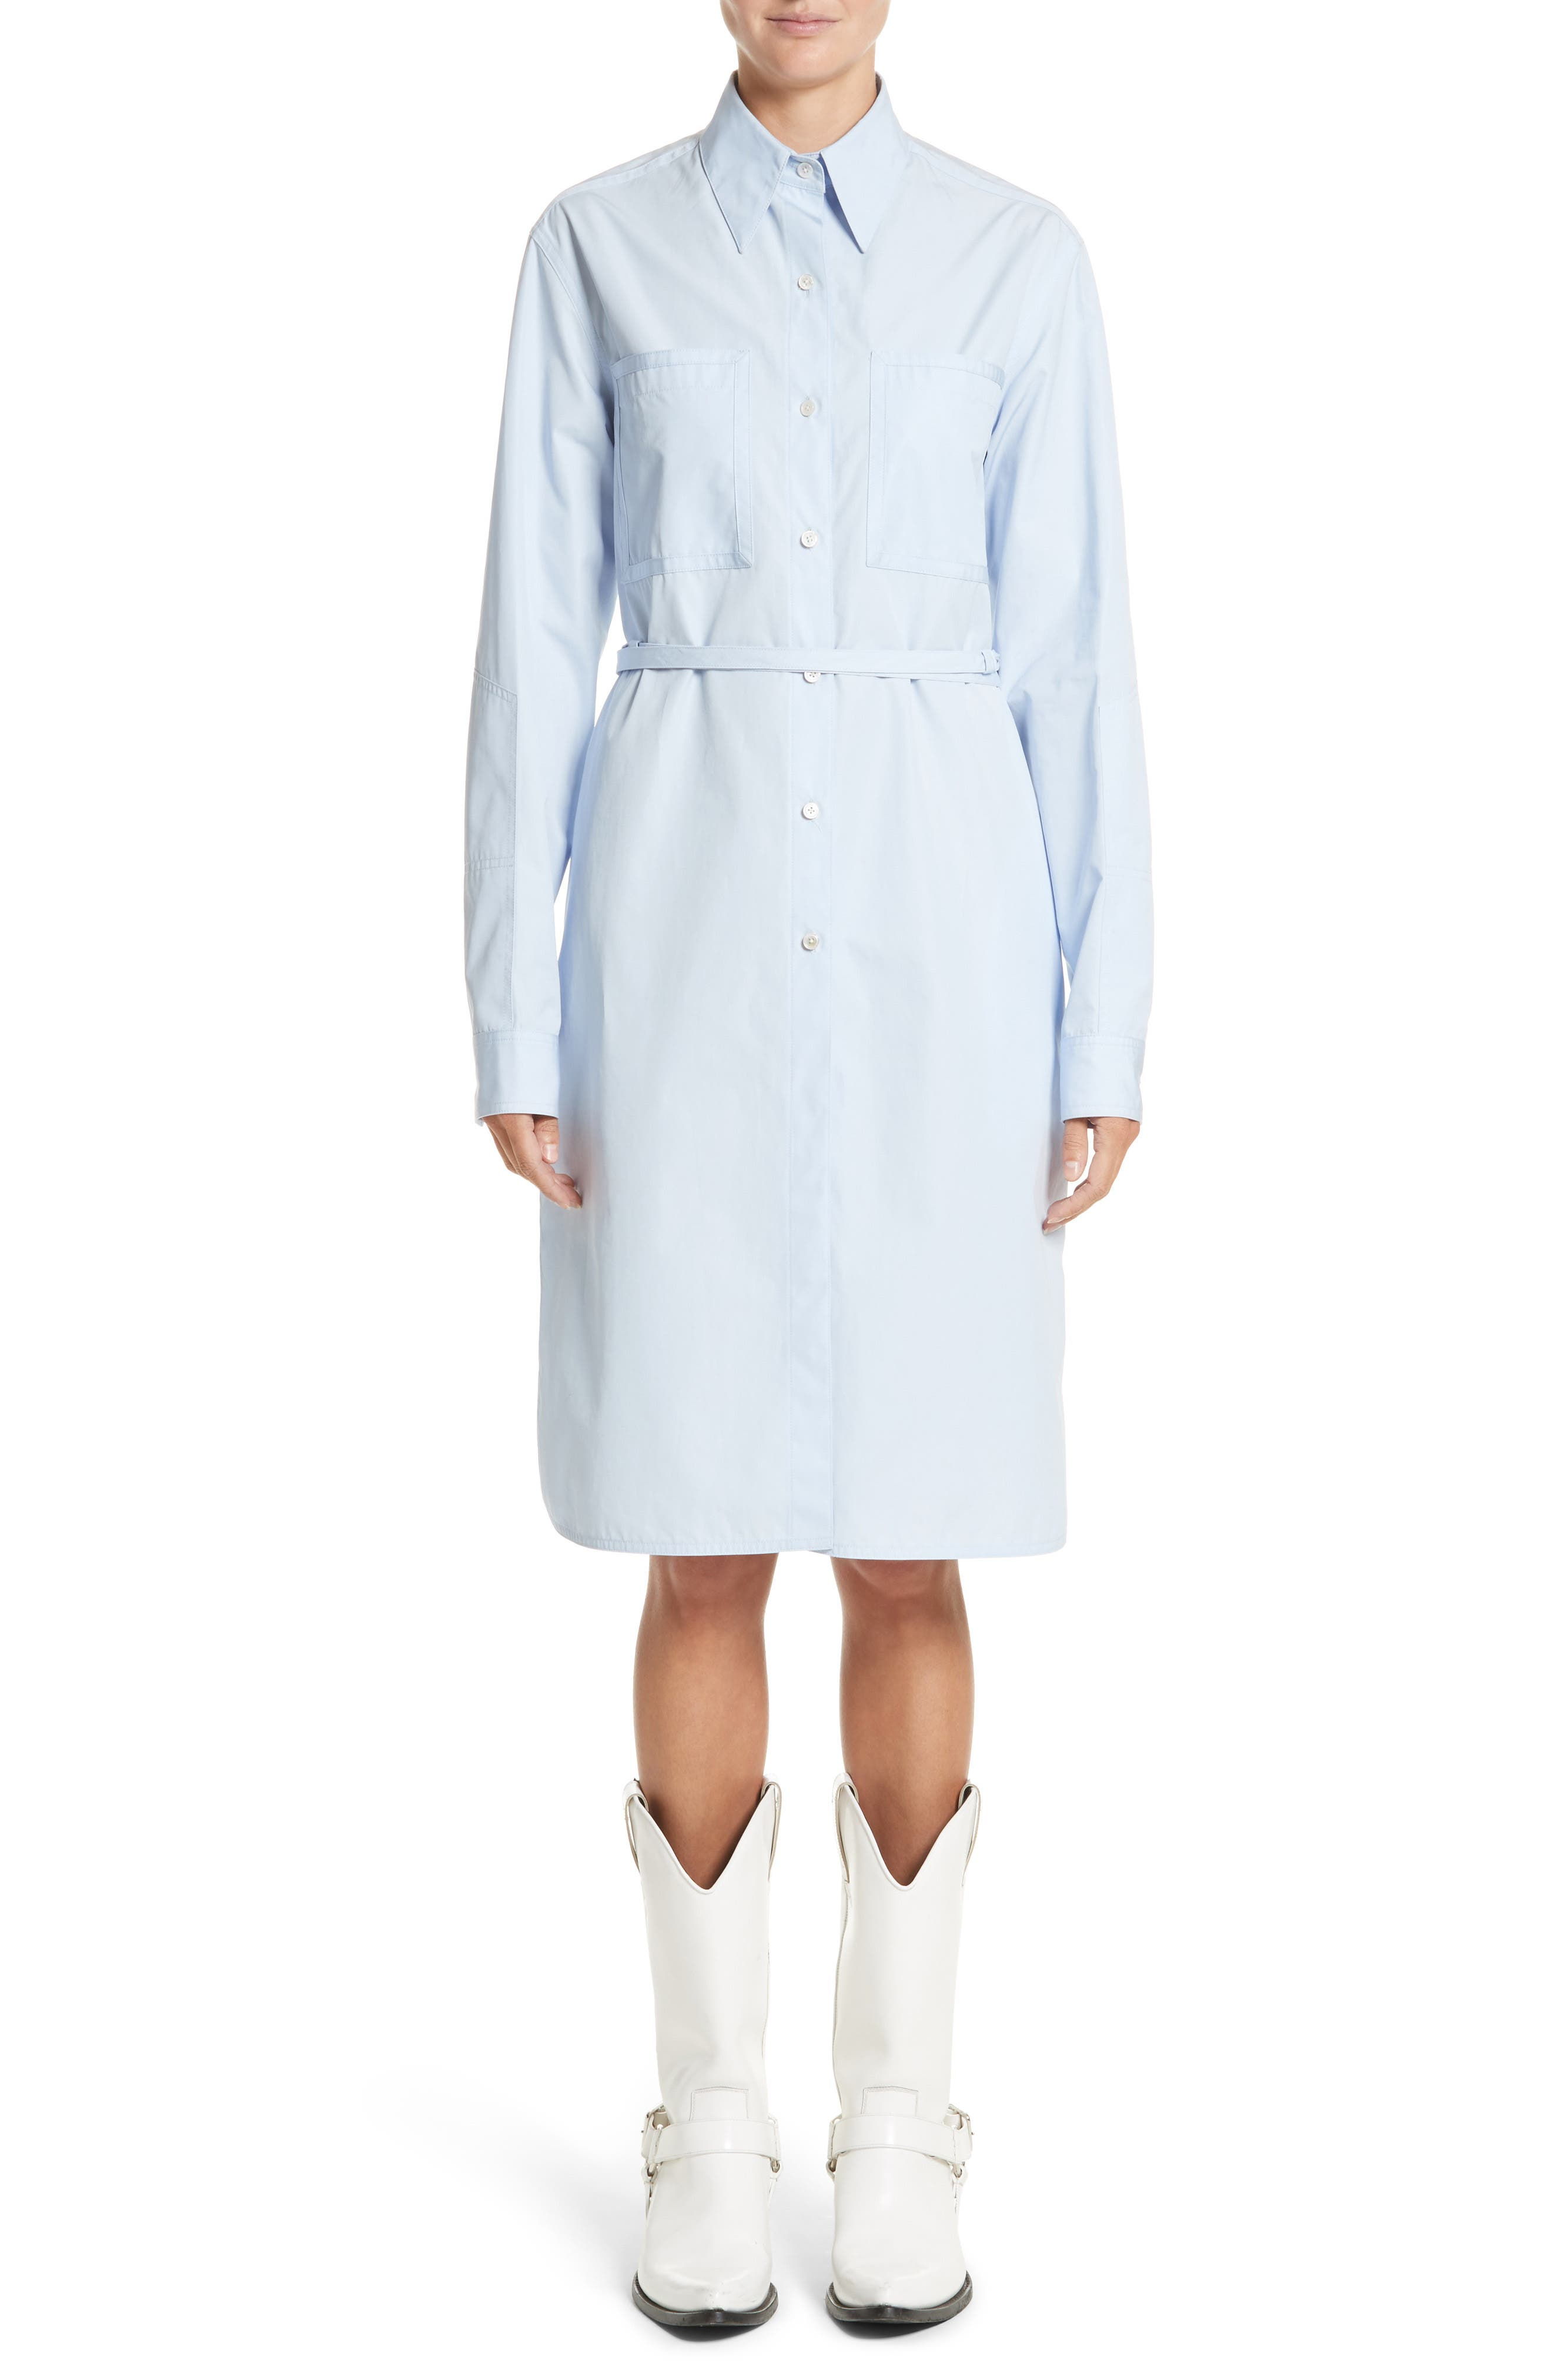 Main Image - CALVIN KLEIN 205W39NYC Lace-Up Back Cotton Poplin Dress